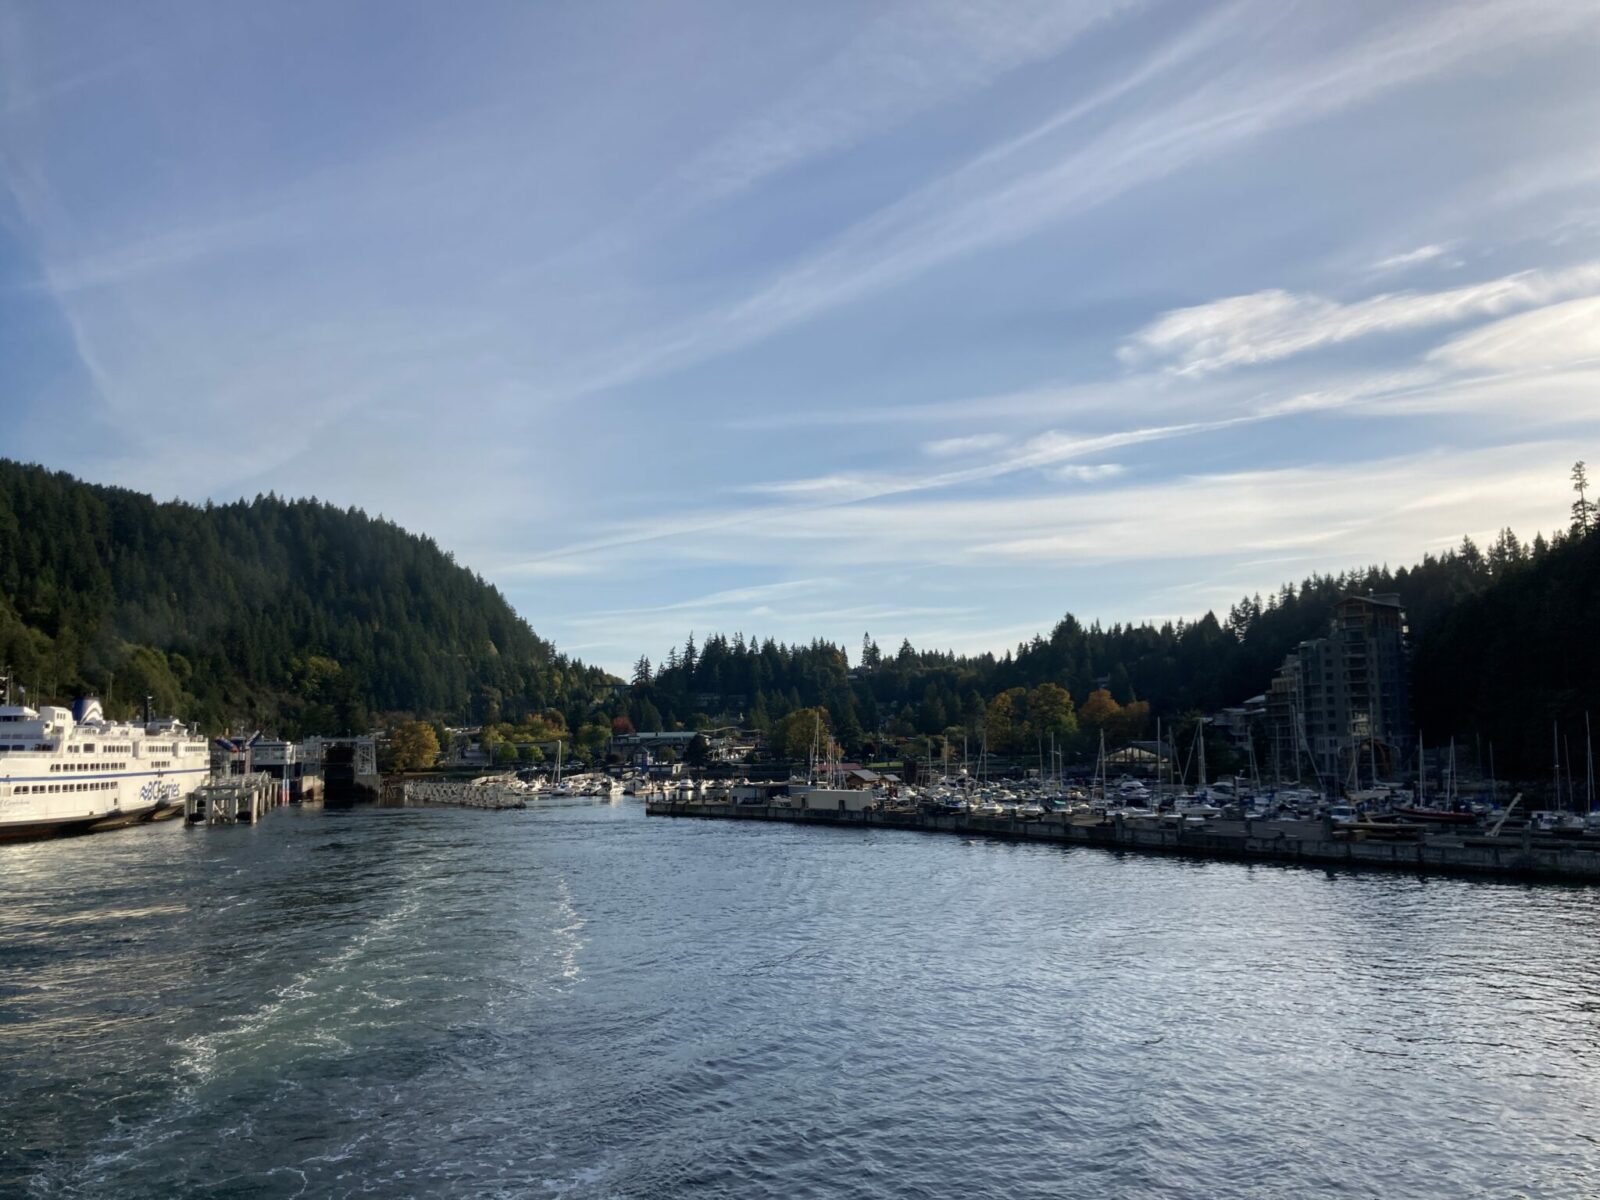 A small harbor with forest around it. There is a large ferry at the dock and the harbor is seen from the deck of another ferry pulling away from the dock